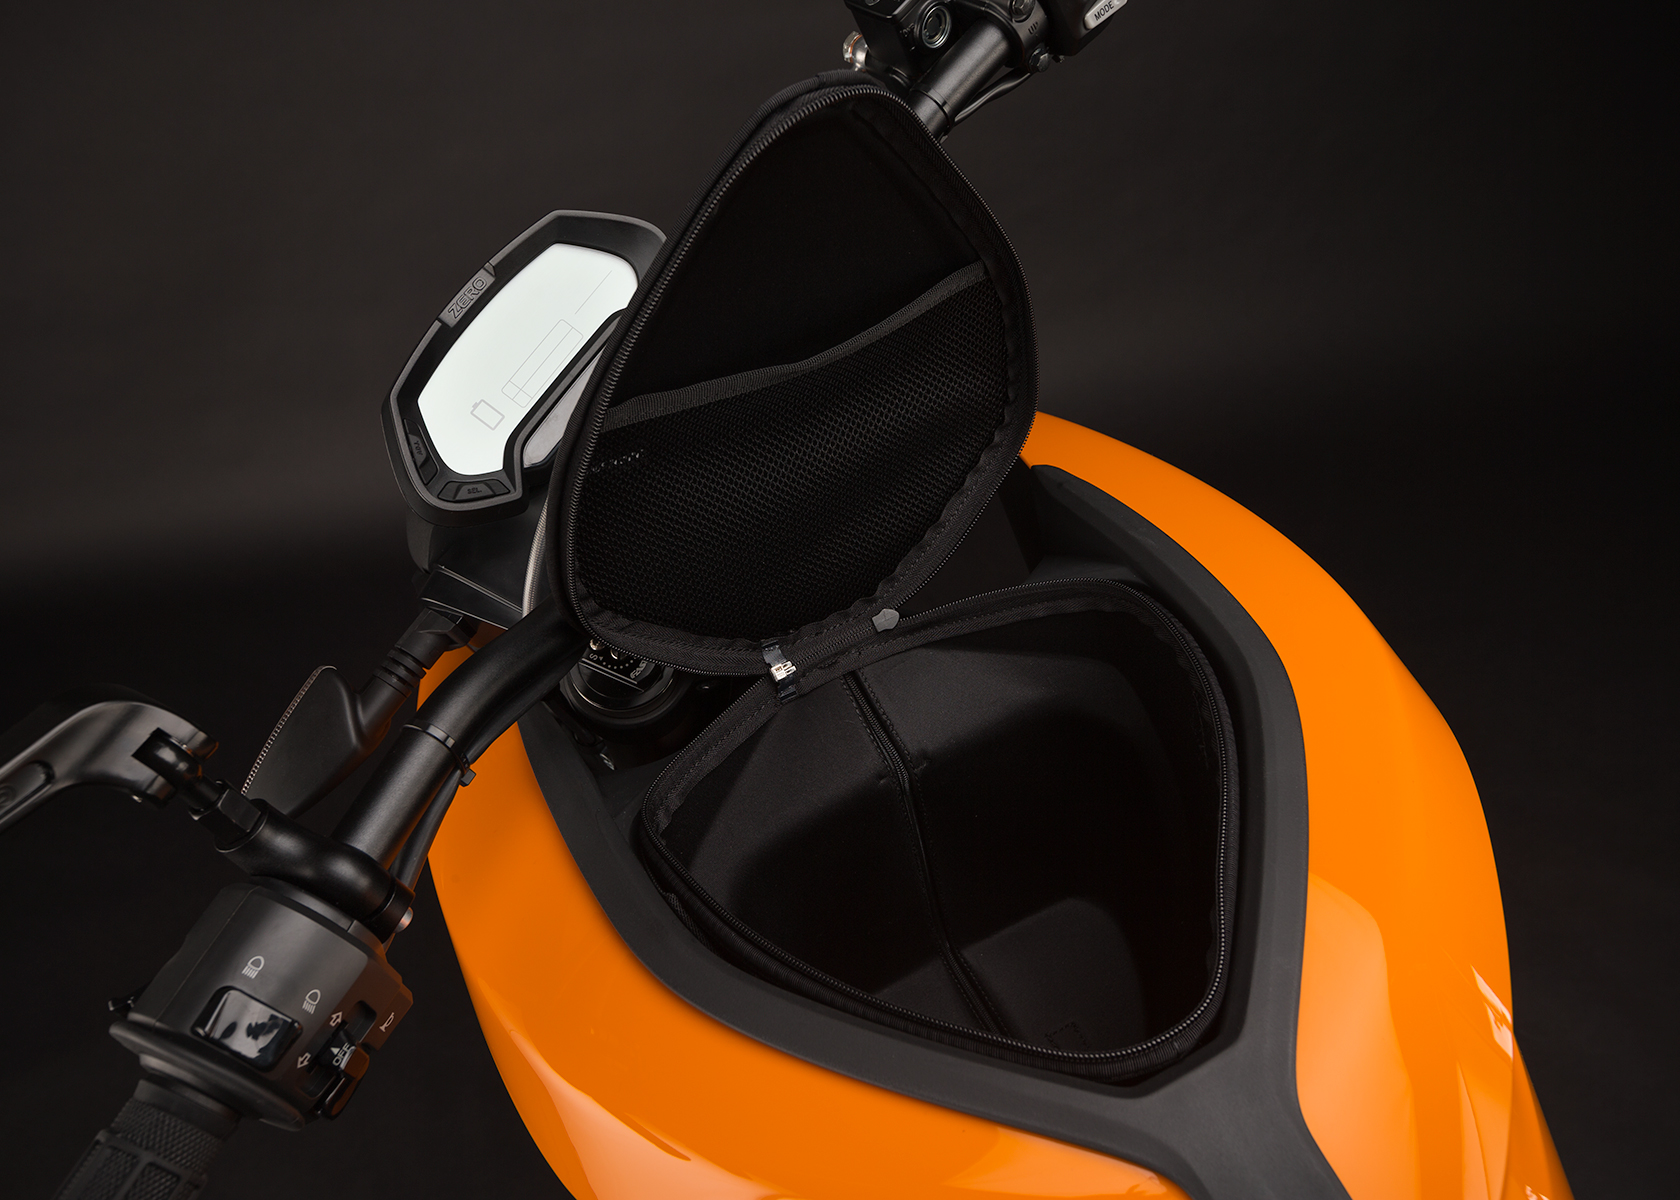 2014 Zero DS Electric Motorcycle: Tank Storage Compartment